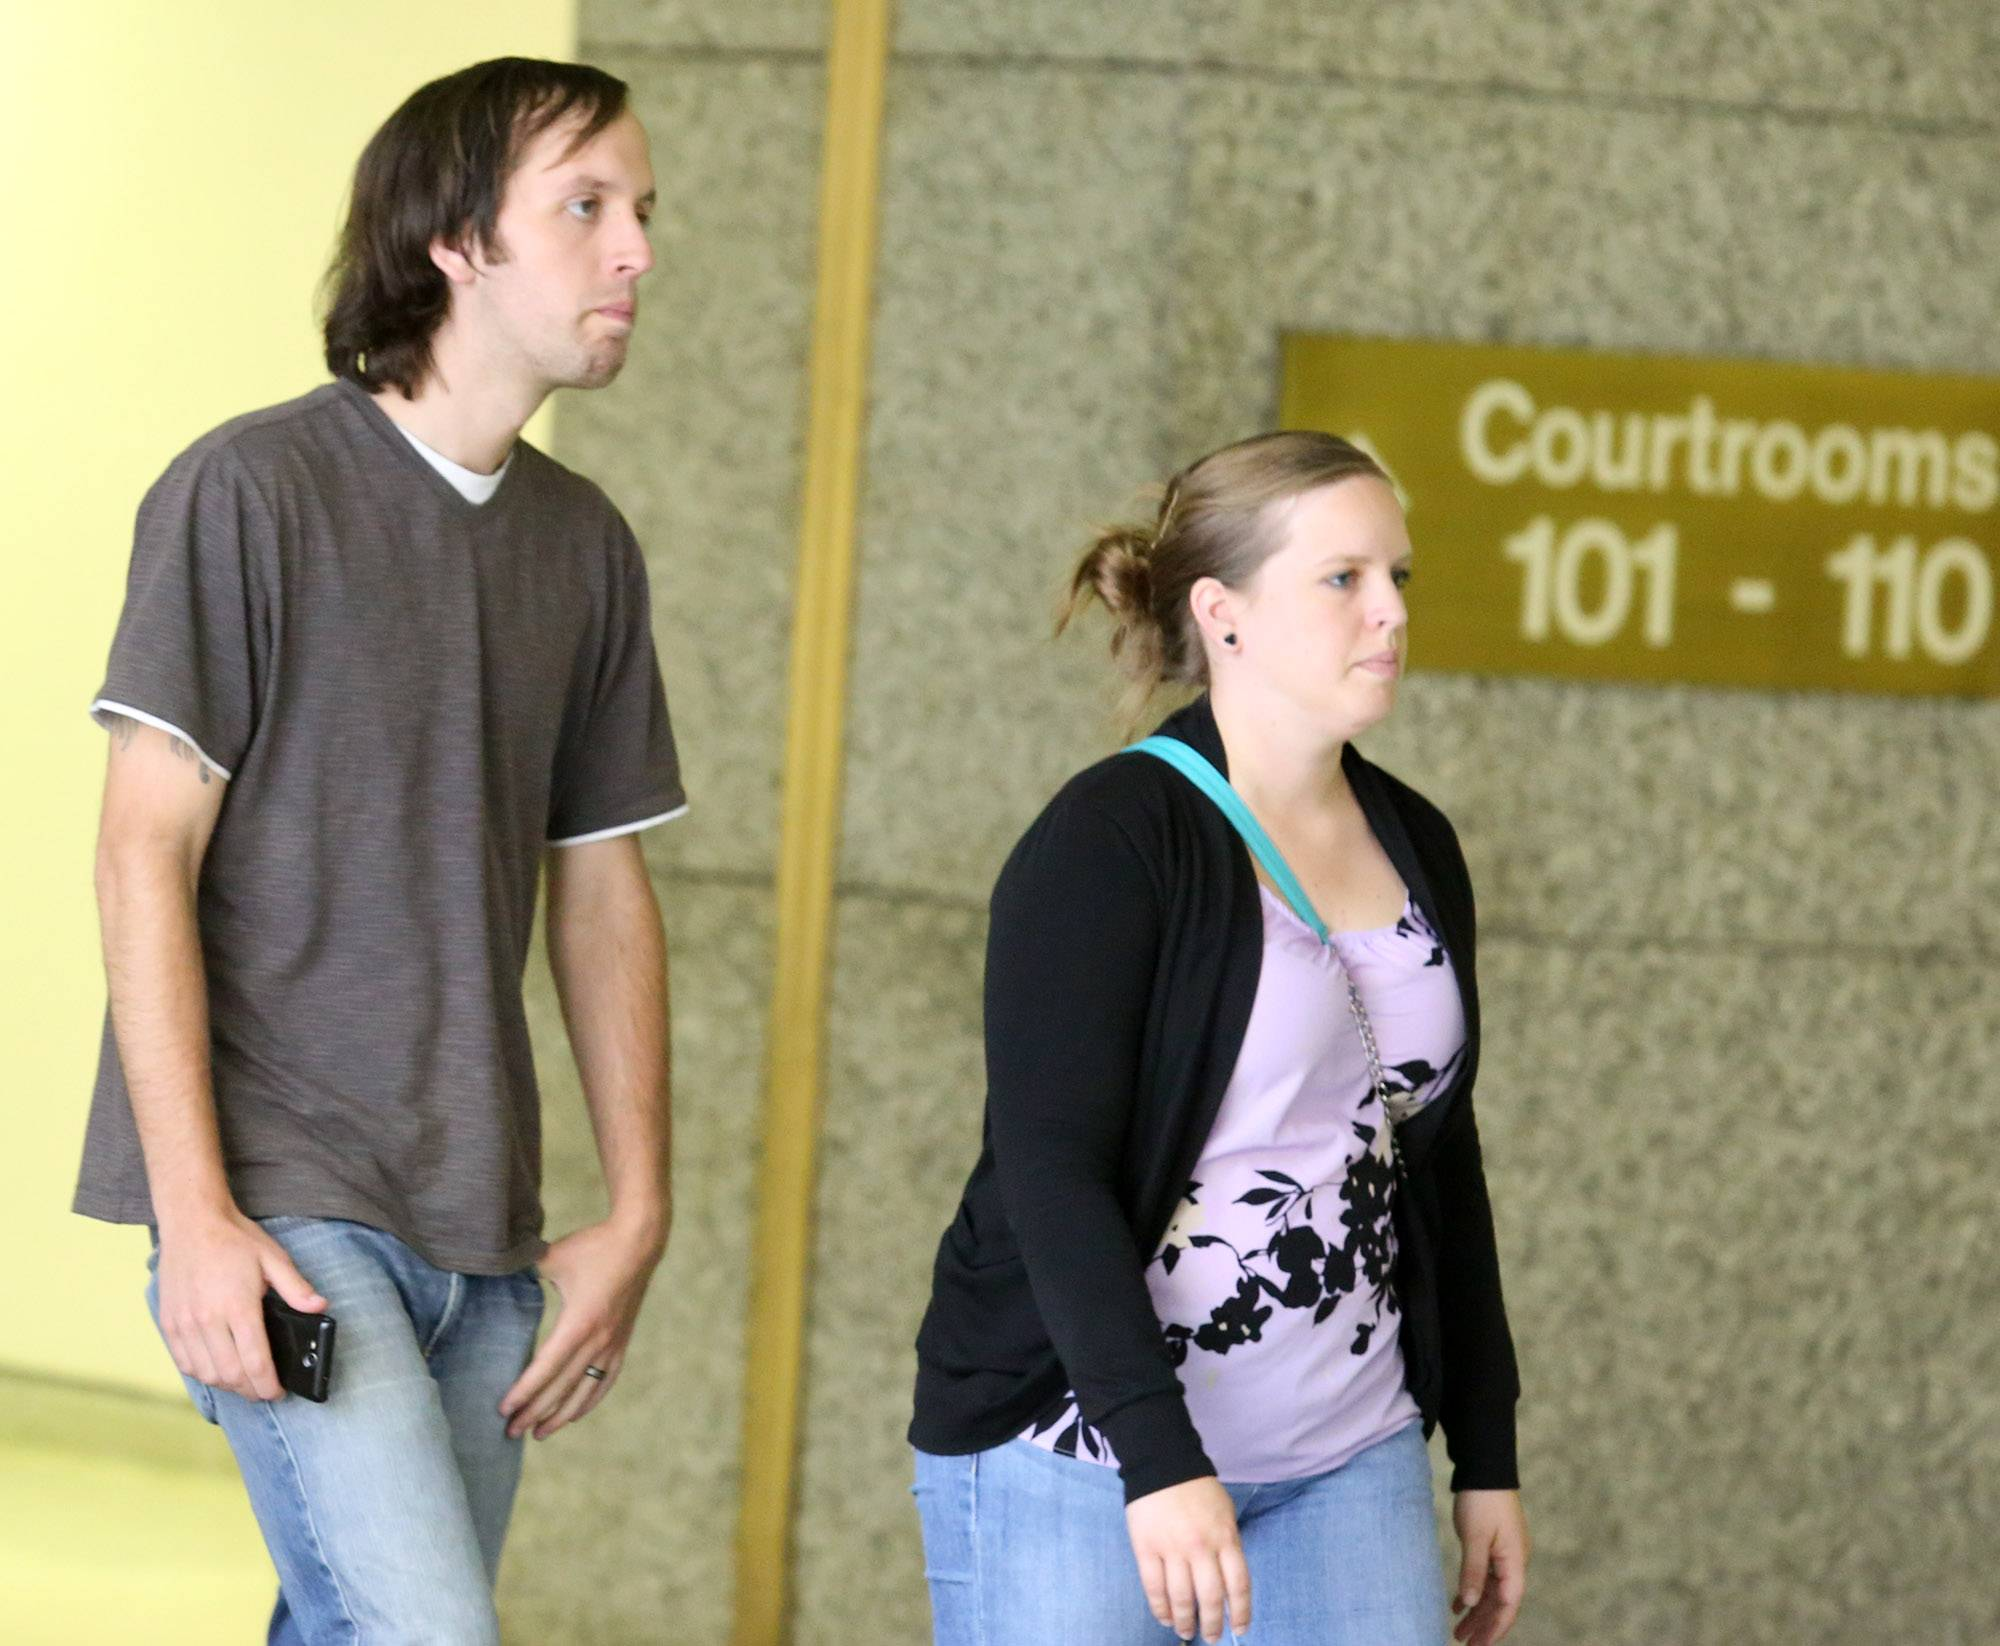 Jeff Engelhardt and his wife arrive at the Cook County courthouse in Rolling Meadows for the sentencing Wednesday of D'Andre Howard, the man convicted of killing three members of the Engelhardt family in 2009 in Hoffman Estates.